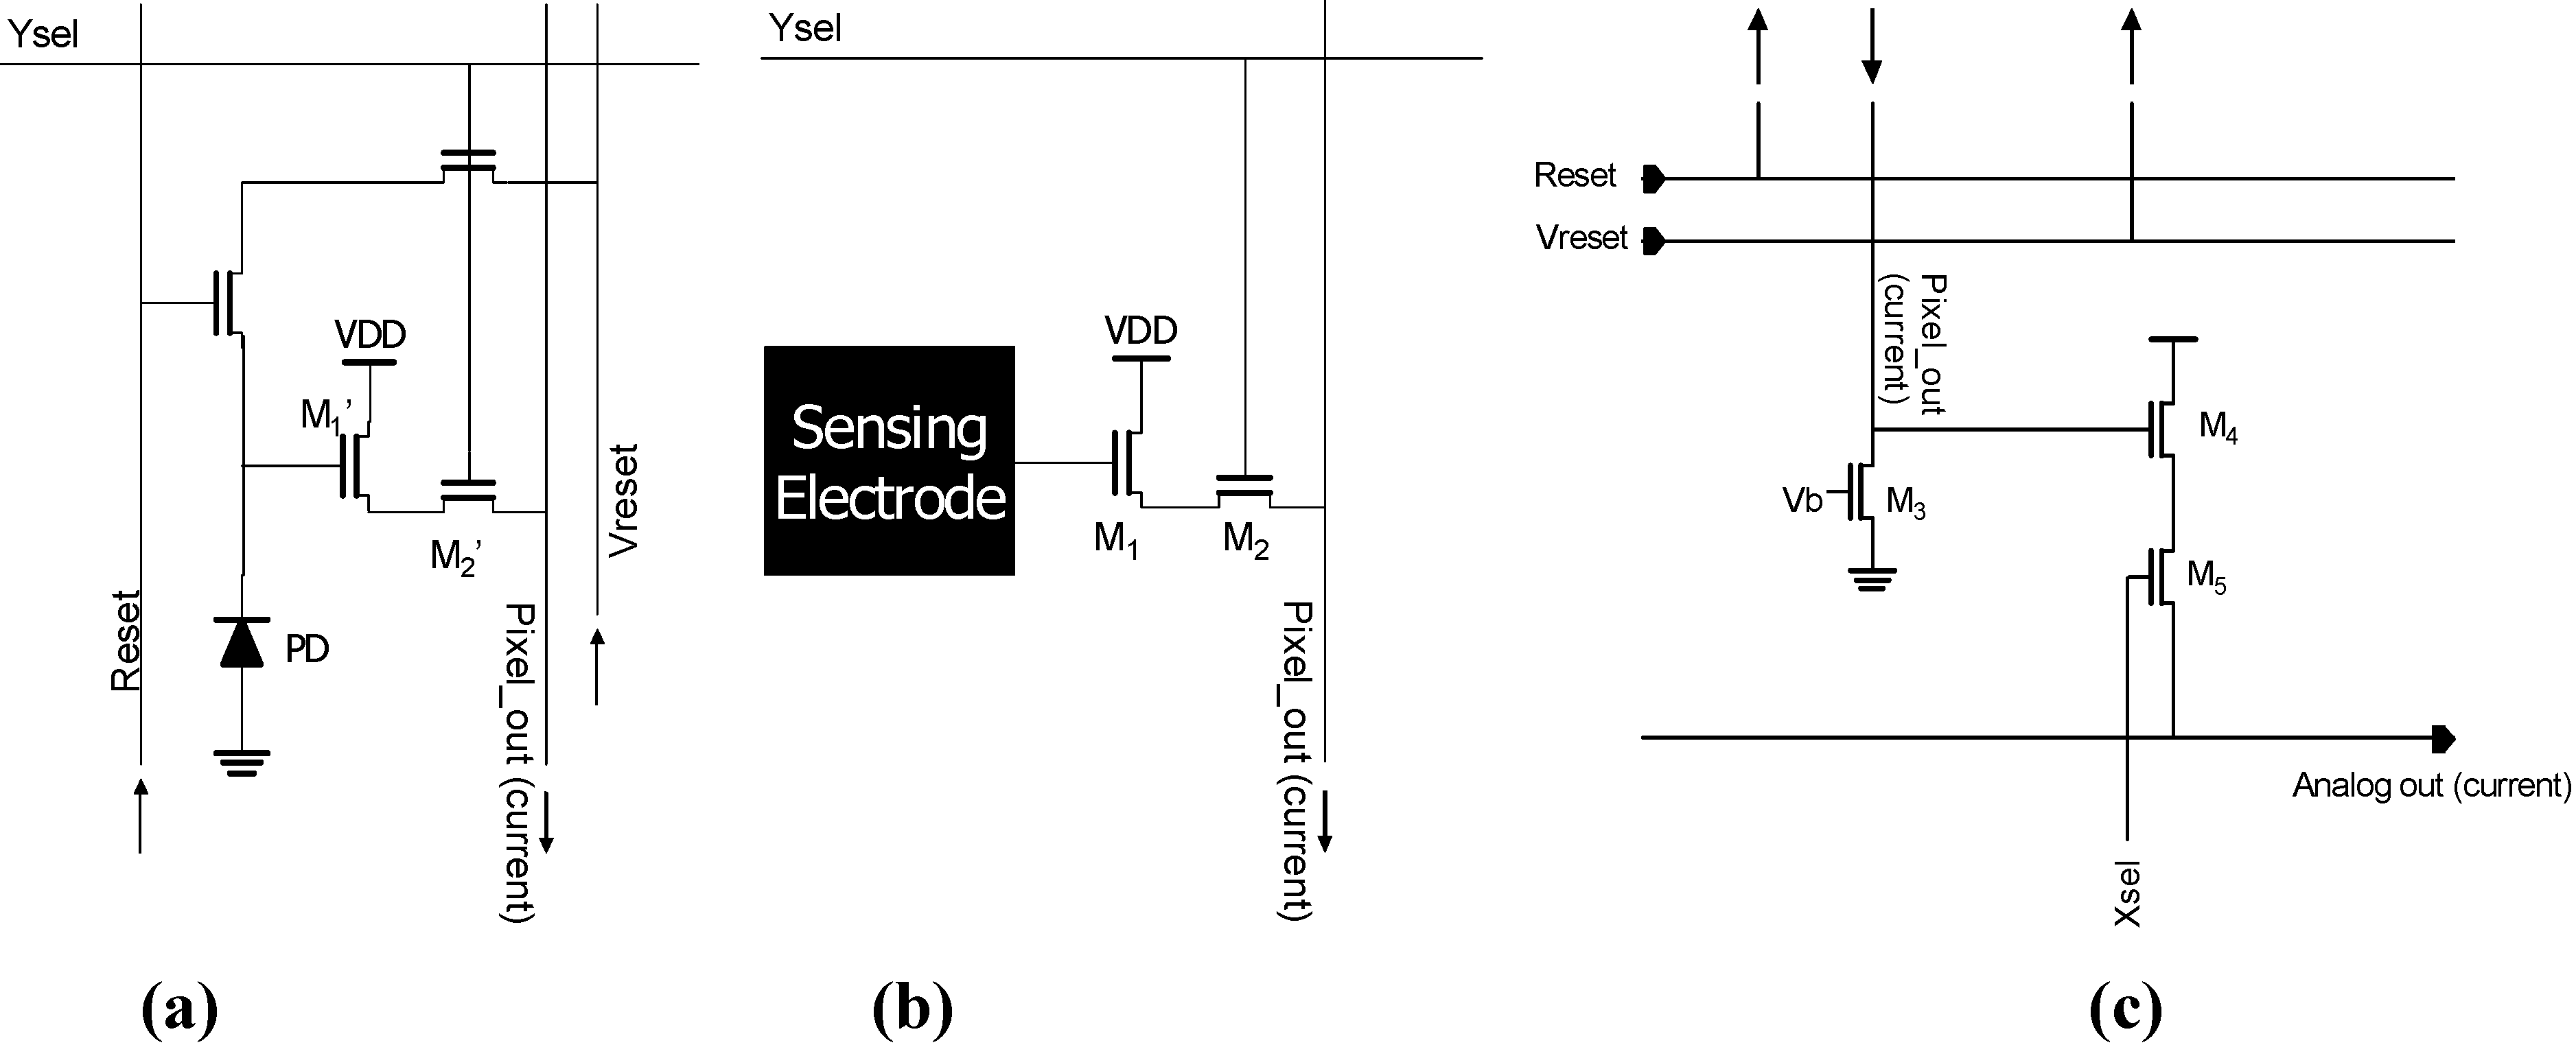 Materials Free Full Text Optical And Electric Multifunctional Simple 1 Amp Current Injector Circuit Diagram Circuits Lab 04 00084 G002 Figure 2 Schematic Diagrams